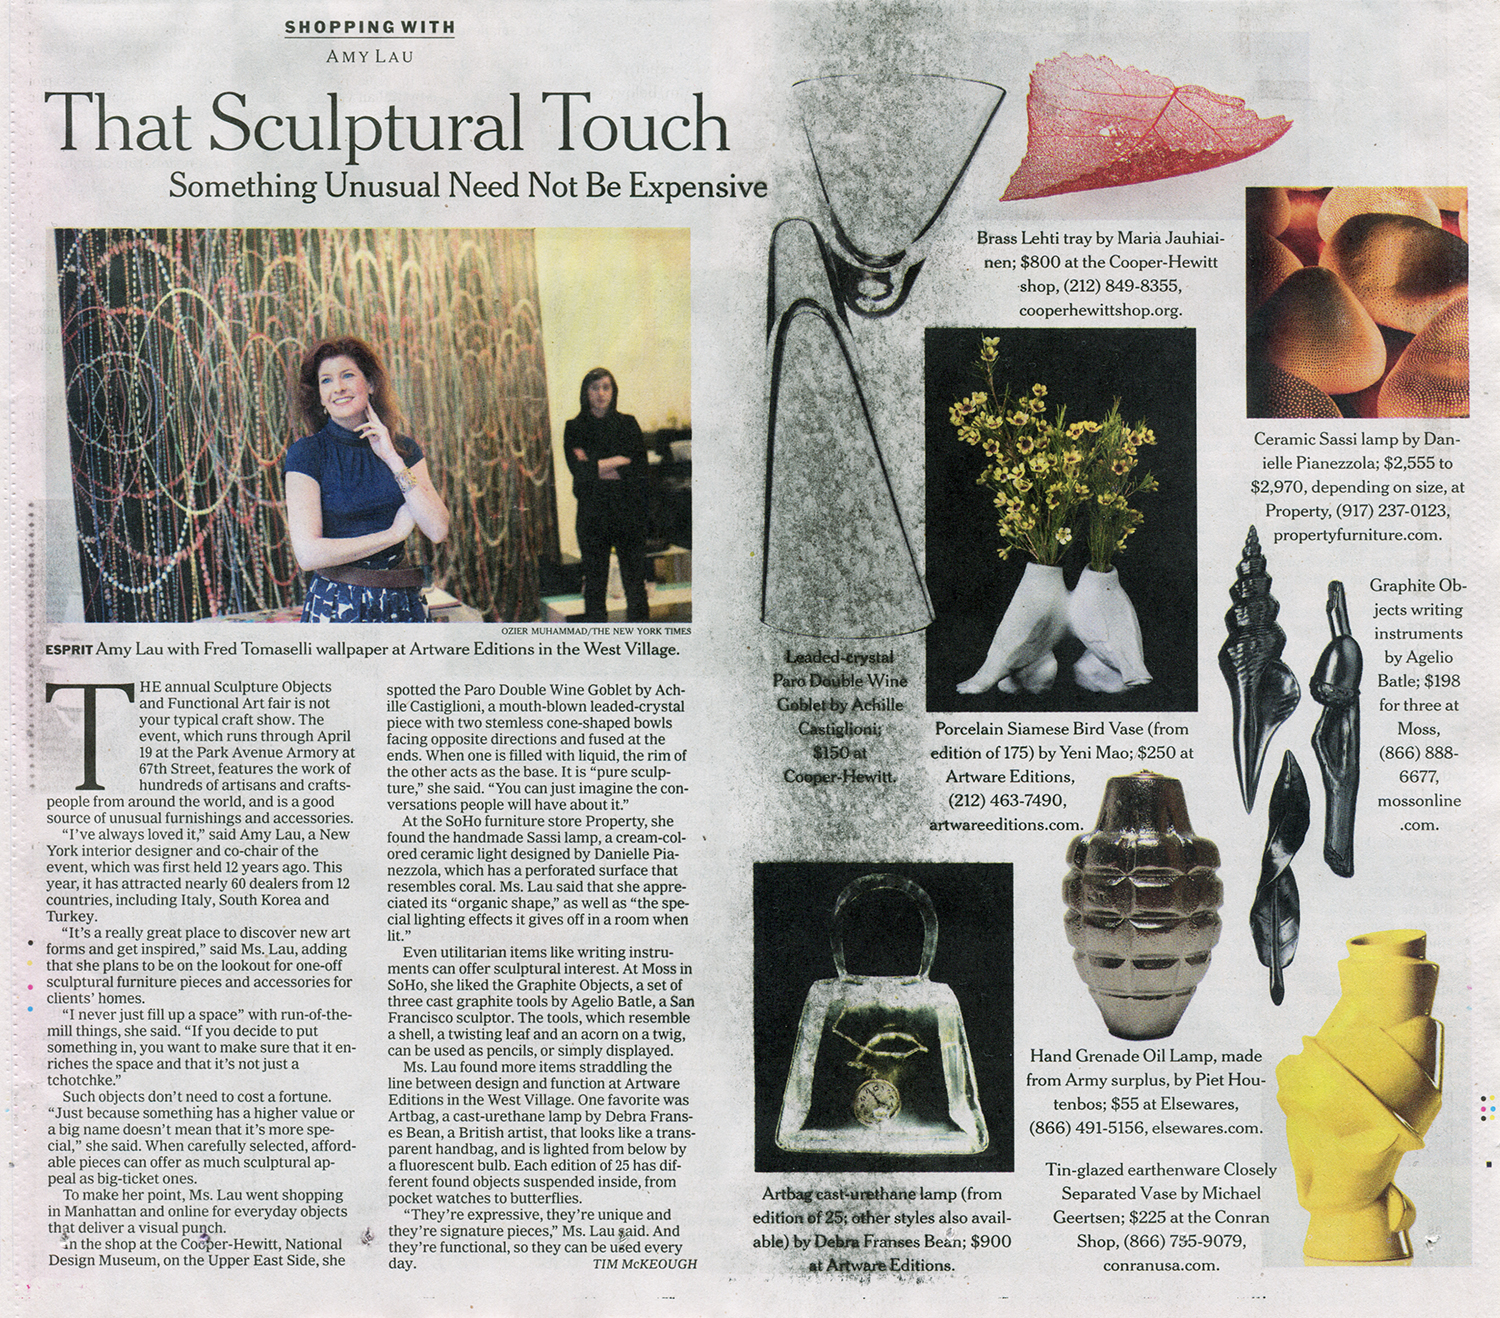 """A silver Hand Grenade Oil Lamp picked for """"That Sculptural Touch"""" Shopping article with Amy Lau."""